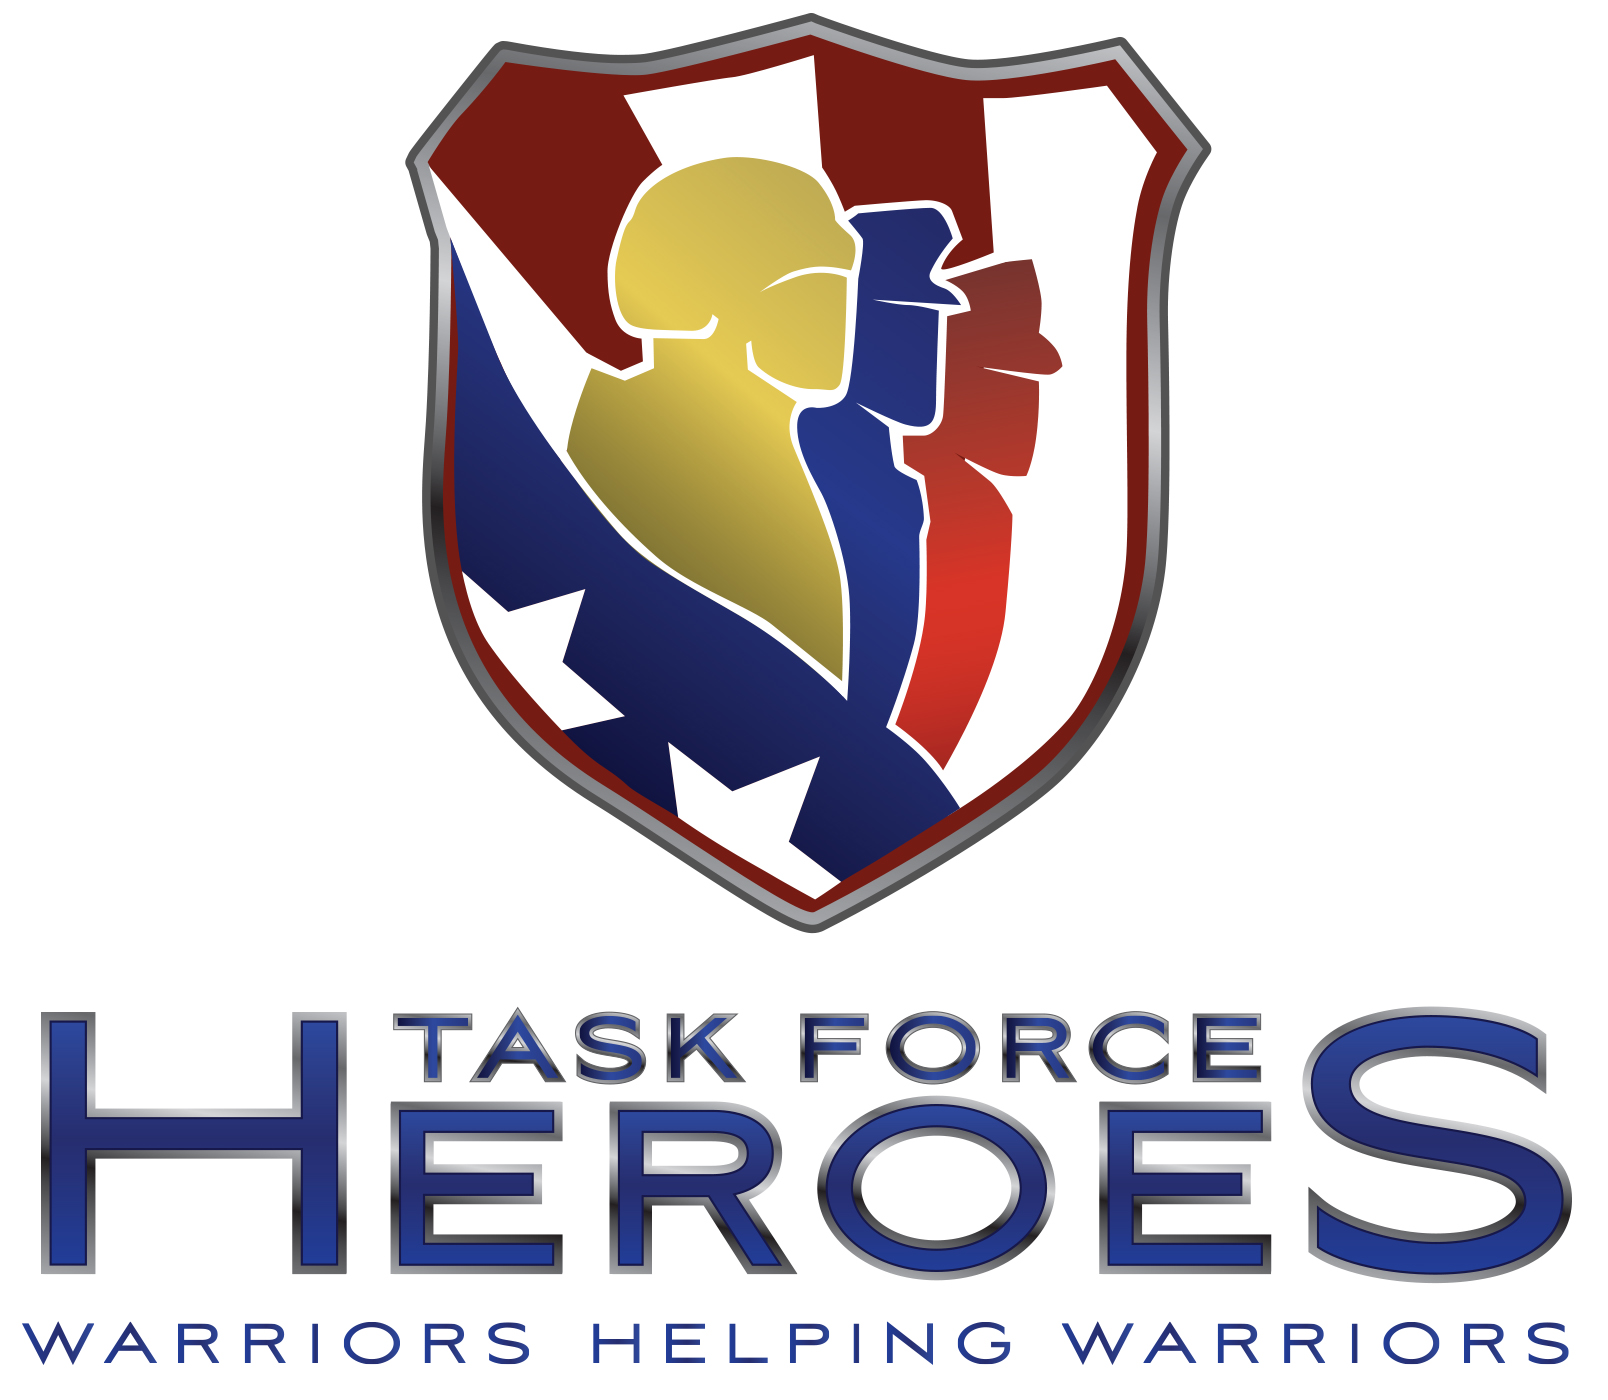 The Borland Family and Task Force Heroes